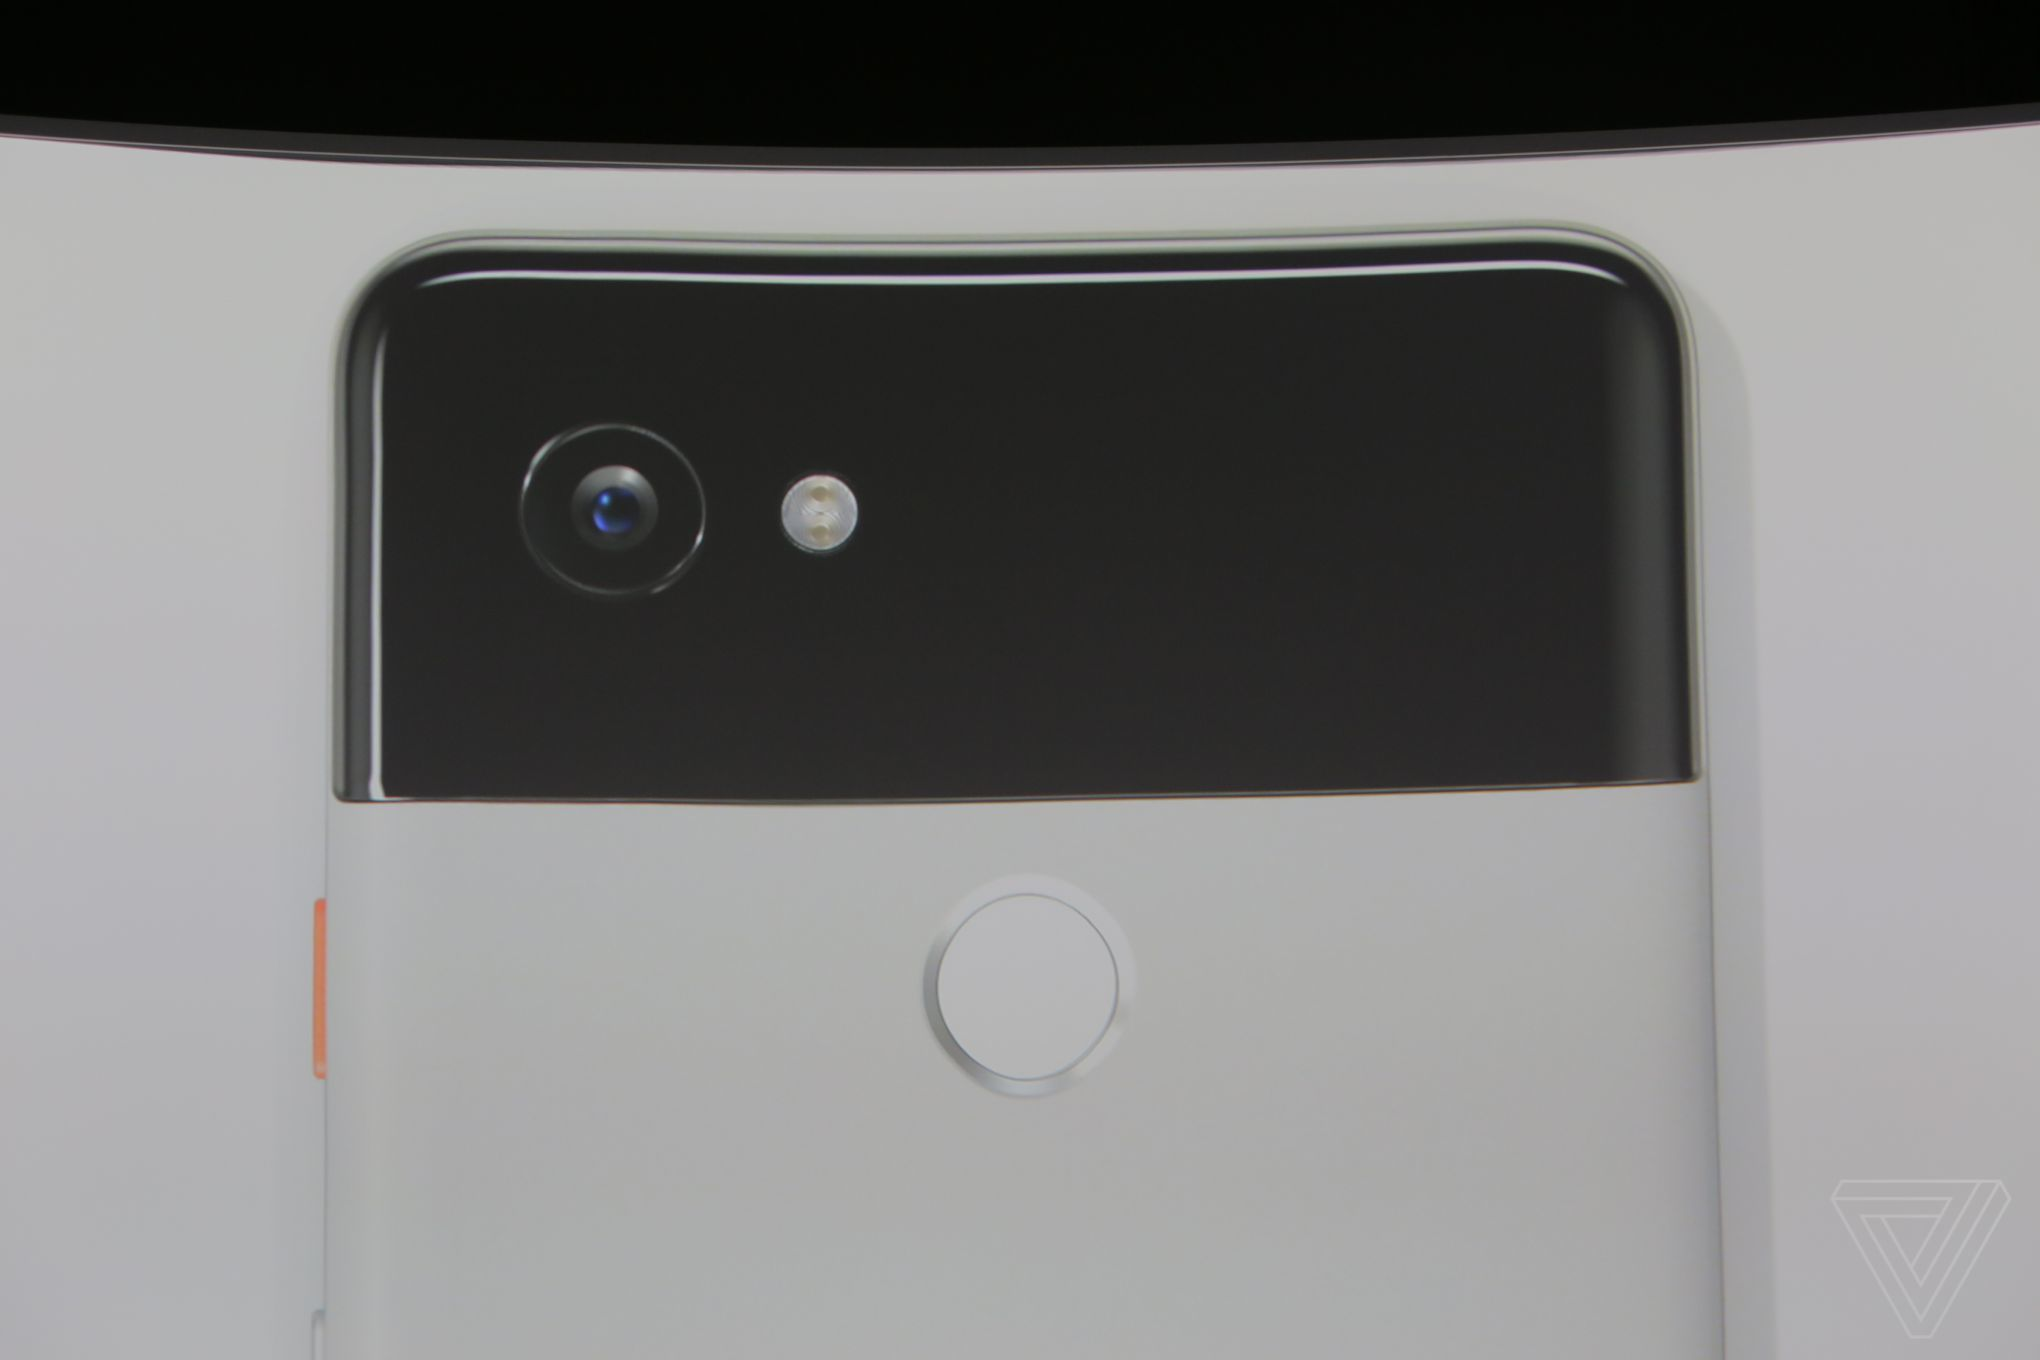 Google Pixel 2 and 2 XL announced with water resistance